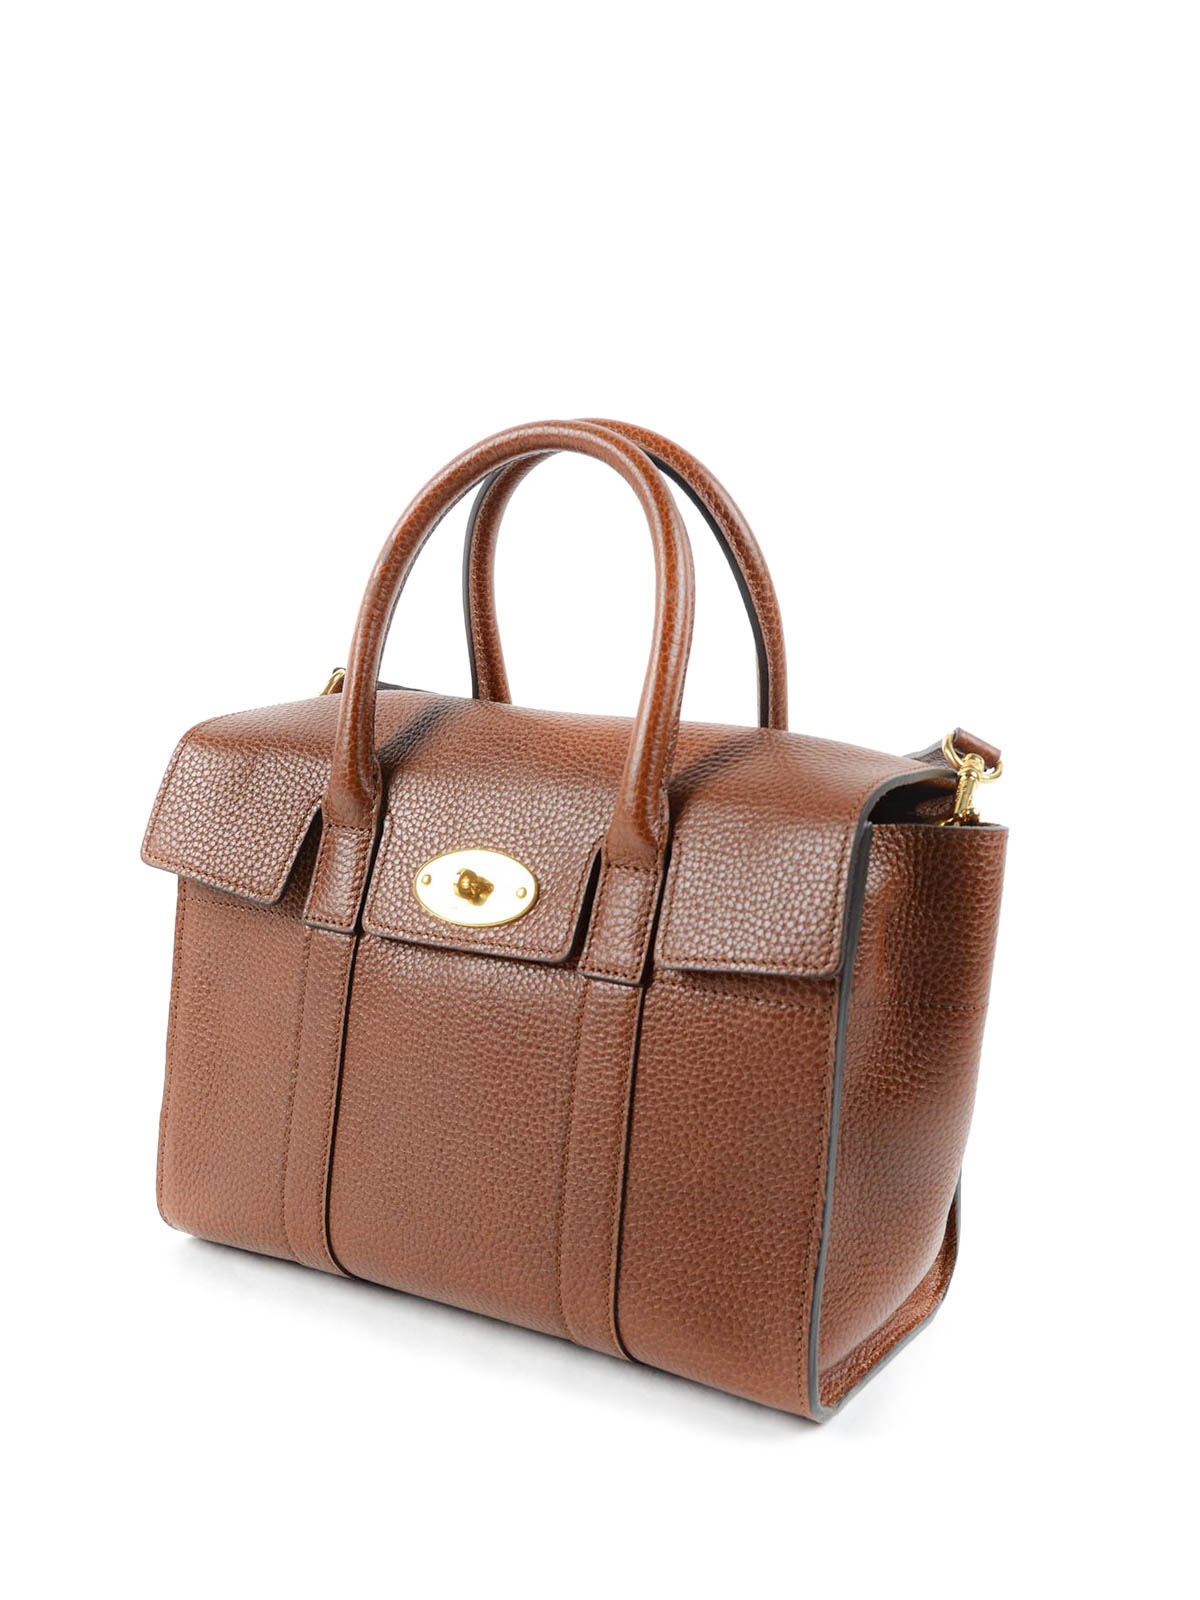 51ef1953abb1 ... italy mulberry bowling bags online new bayswater small bag 9bf0f 52169